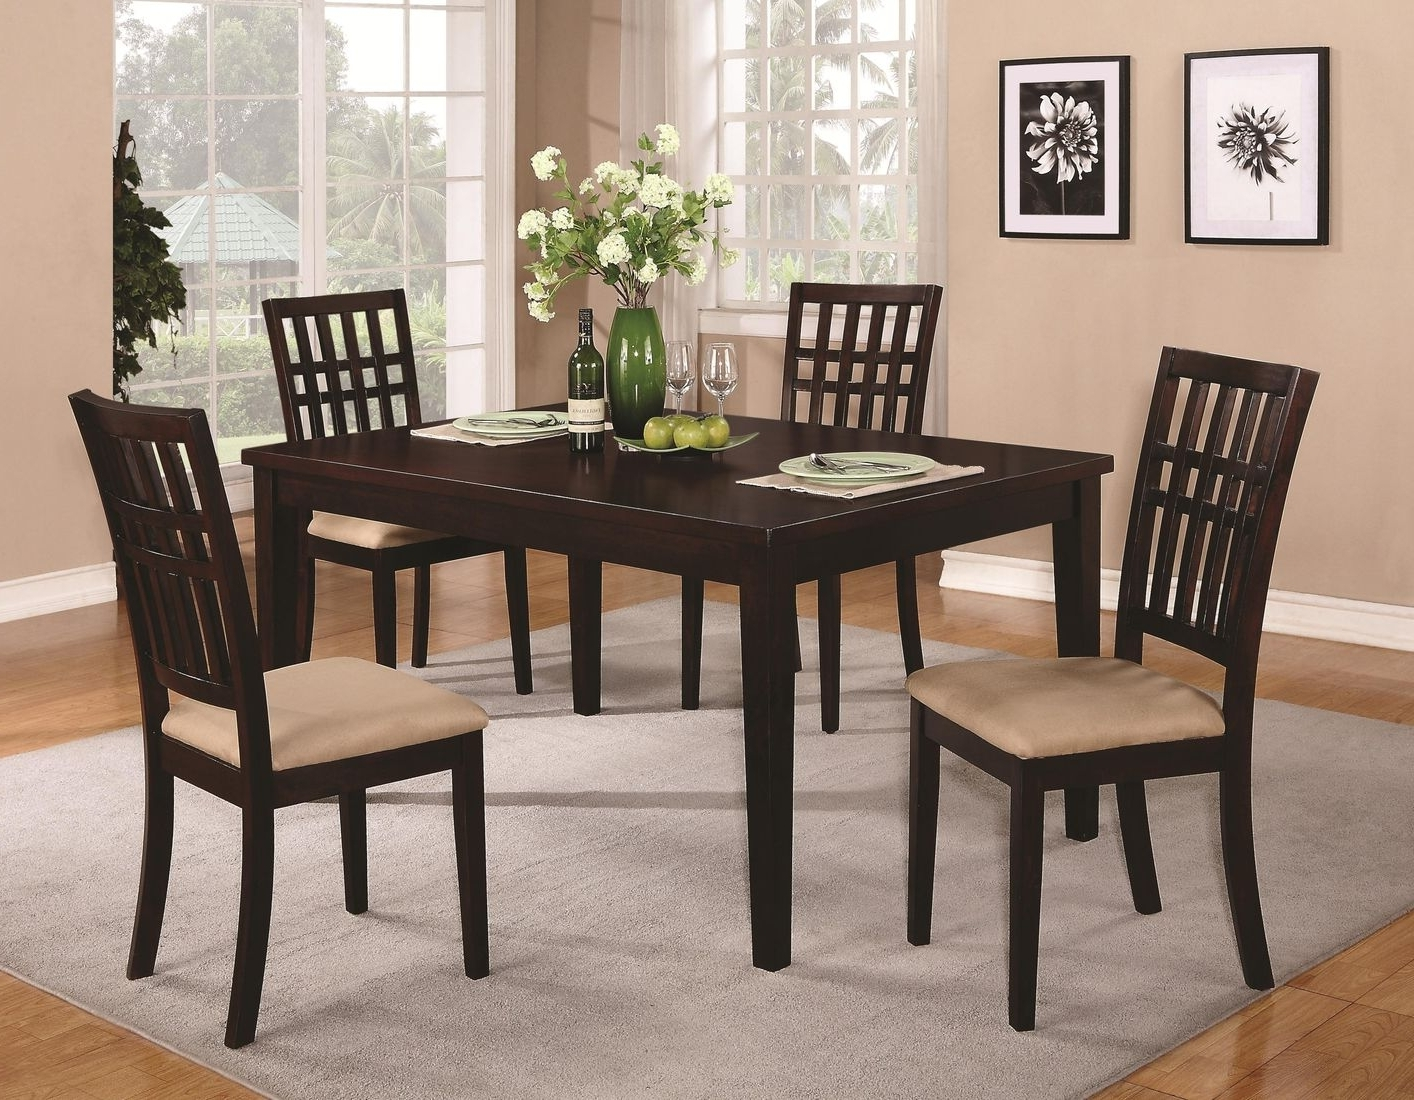 Most Current Brandt Dark Cherry Wood Dining Table Intended For Dining Tables Dark Wood (View 15 of 25)